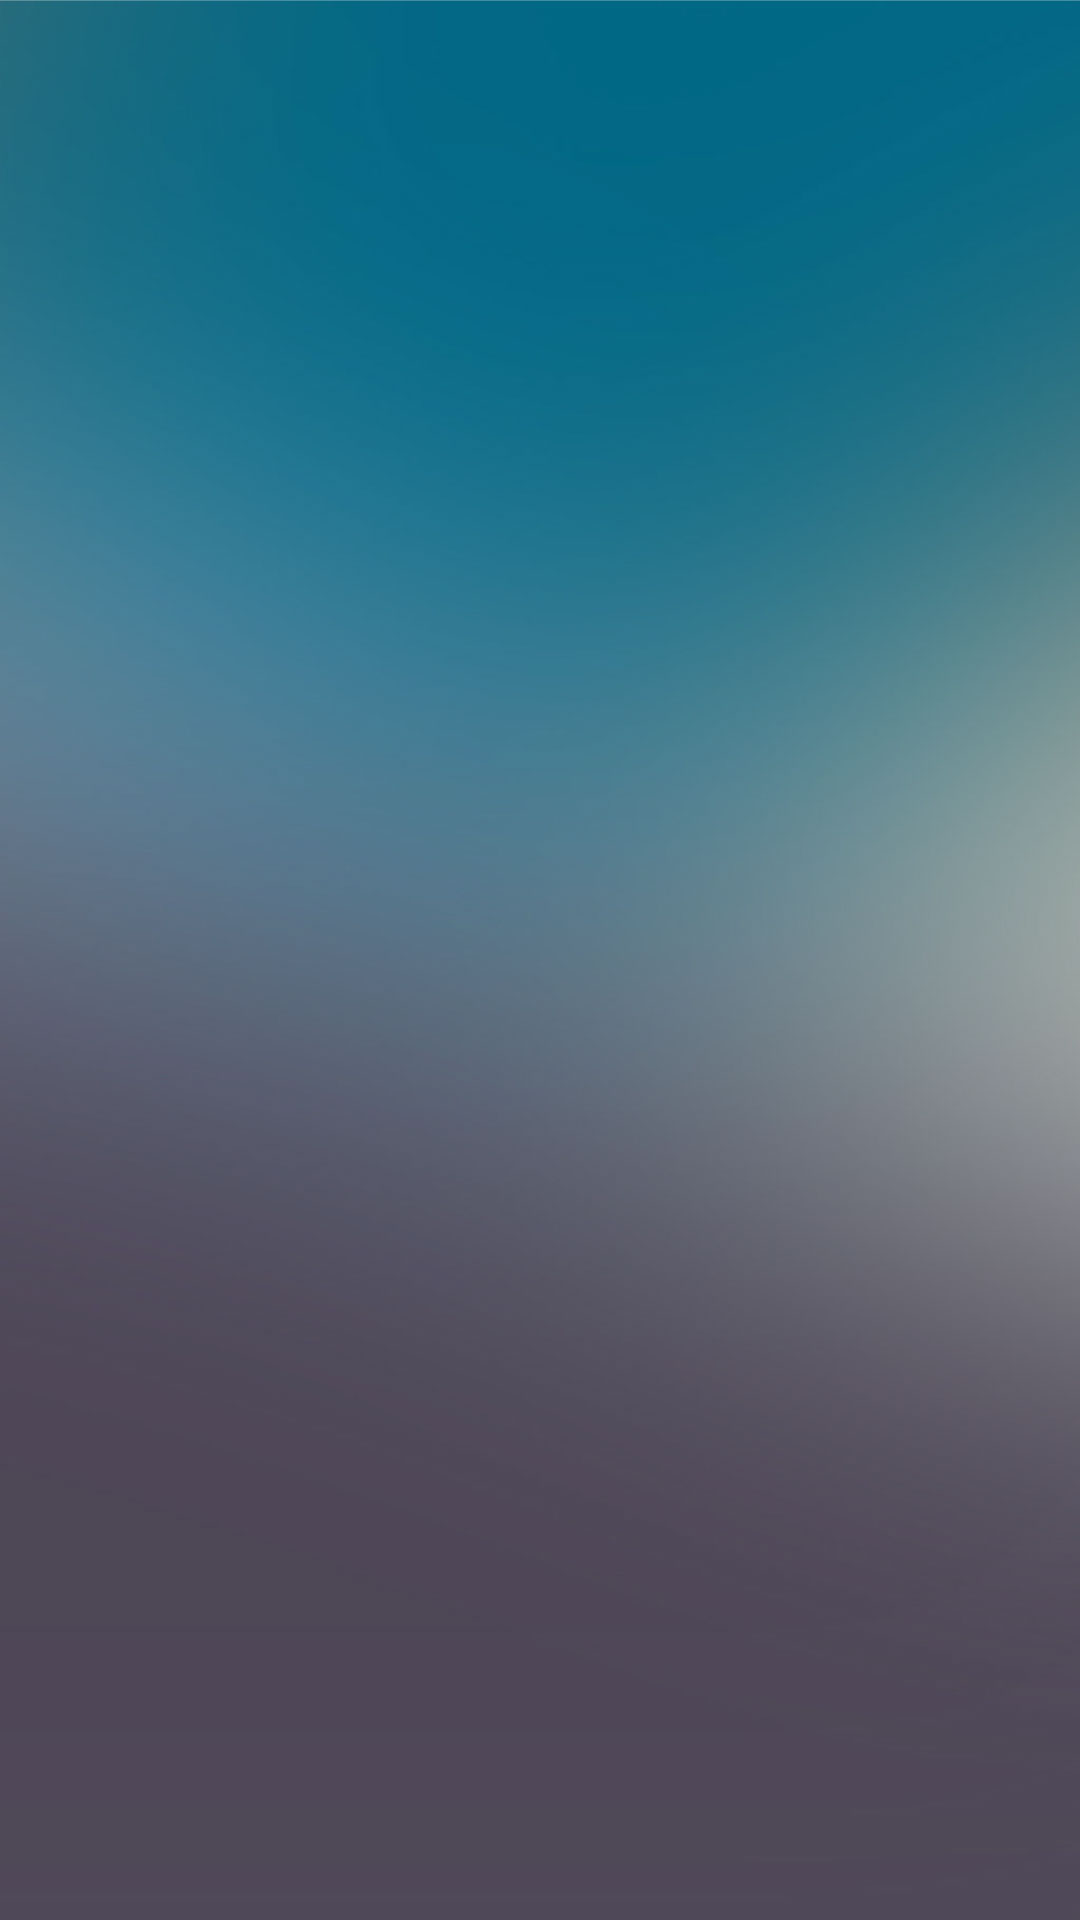 can we make multi color gradient in xml for android background 1080x1920